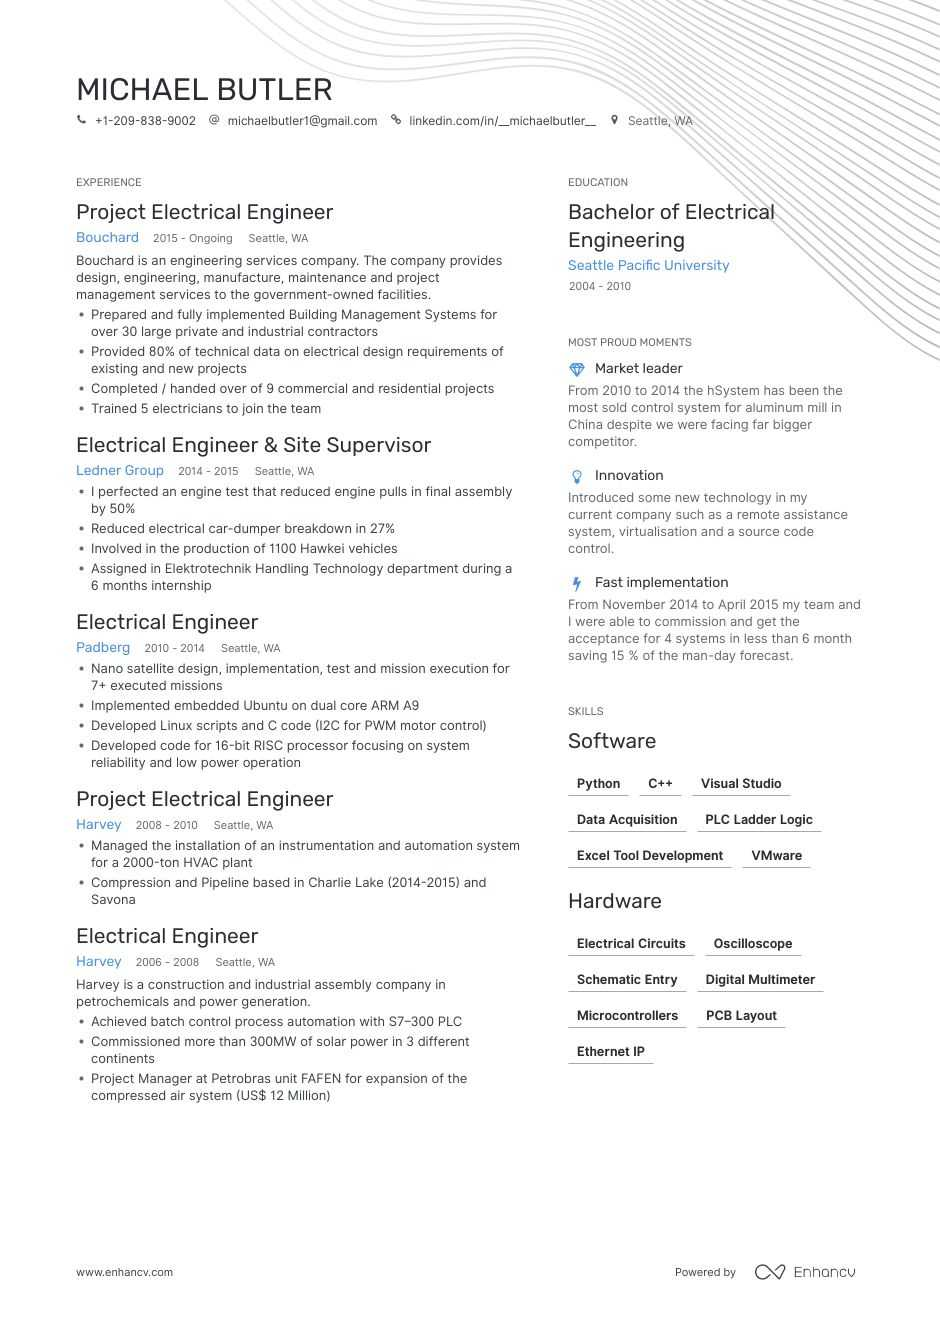 electrical engineer resume examples pro tips featured enhancv fresher sample engineering Resume Fresher Electrical Engineer Resume Sample